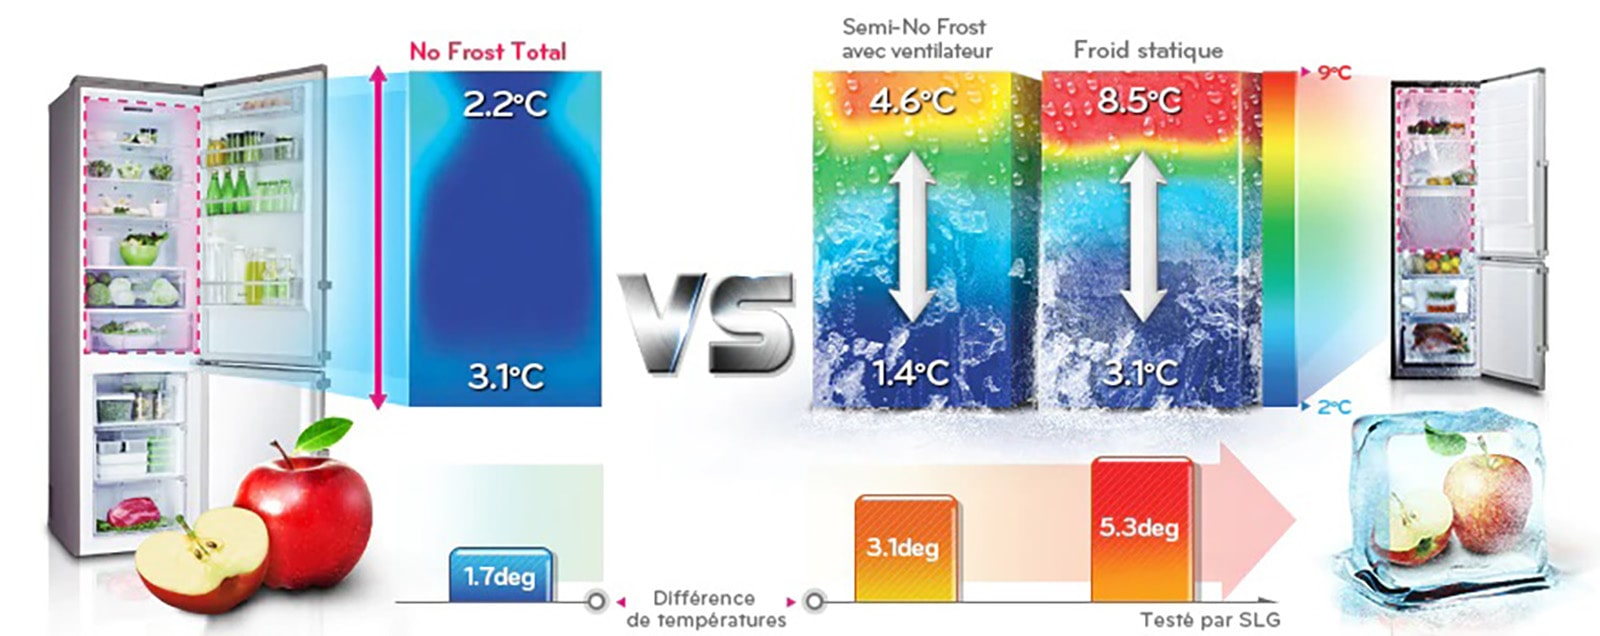 FROID VENTILÉ TOTAL ( NO FROST TOTAL )